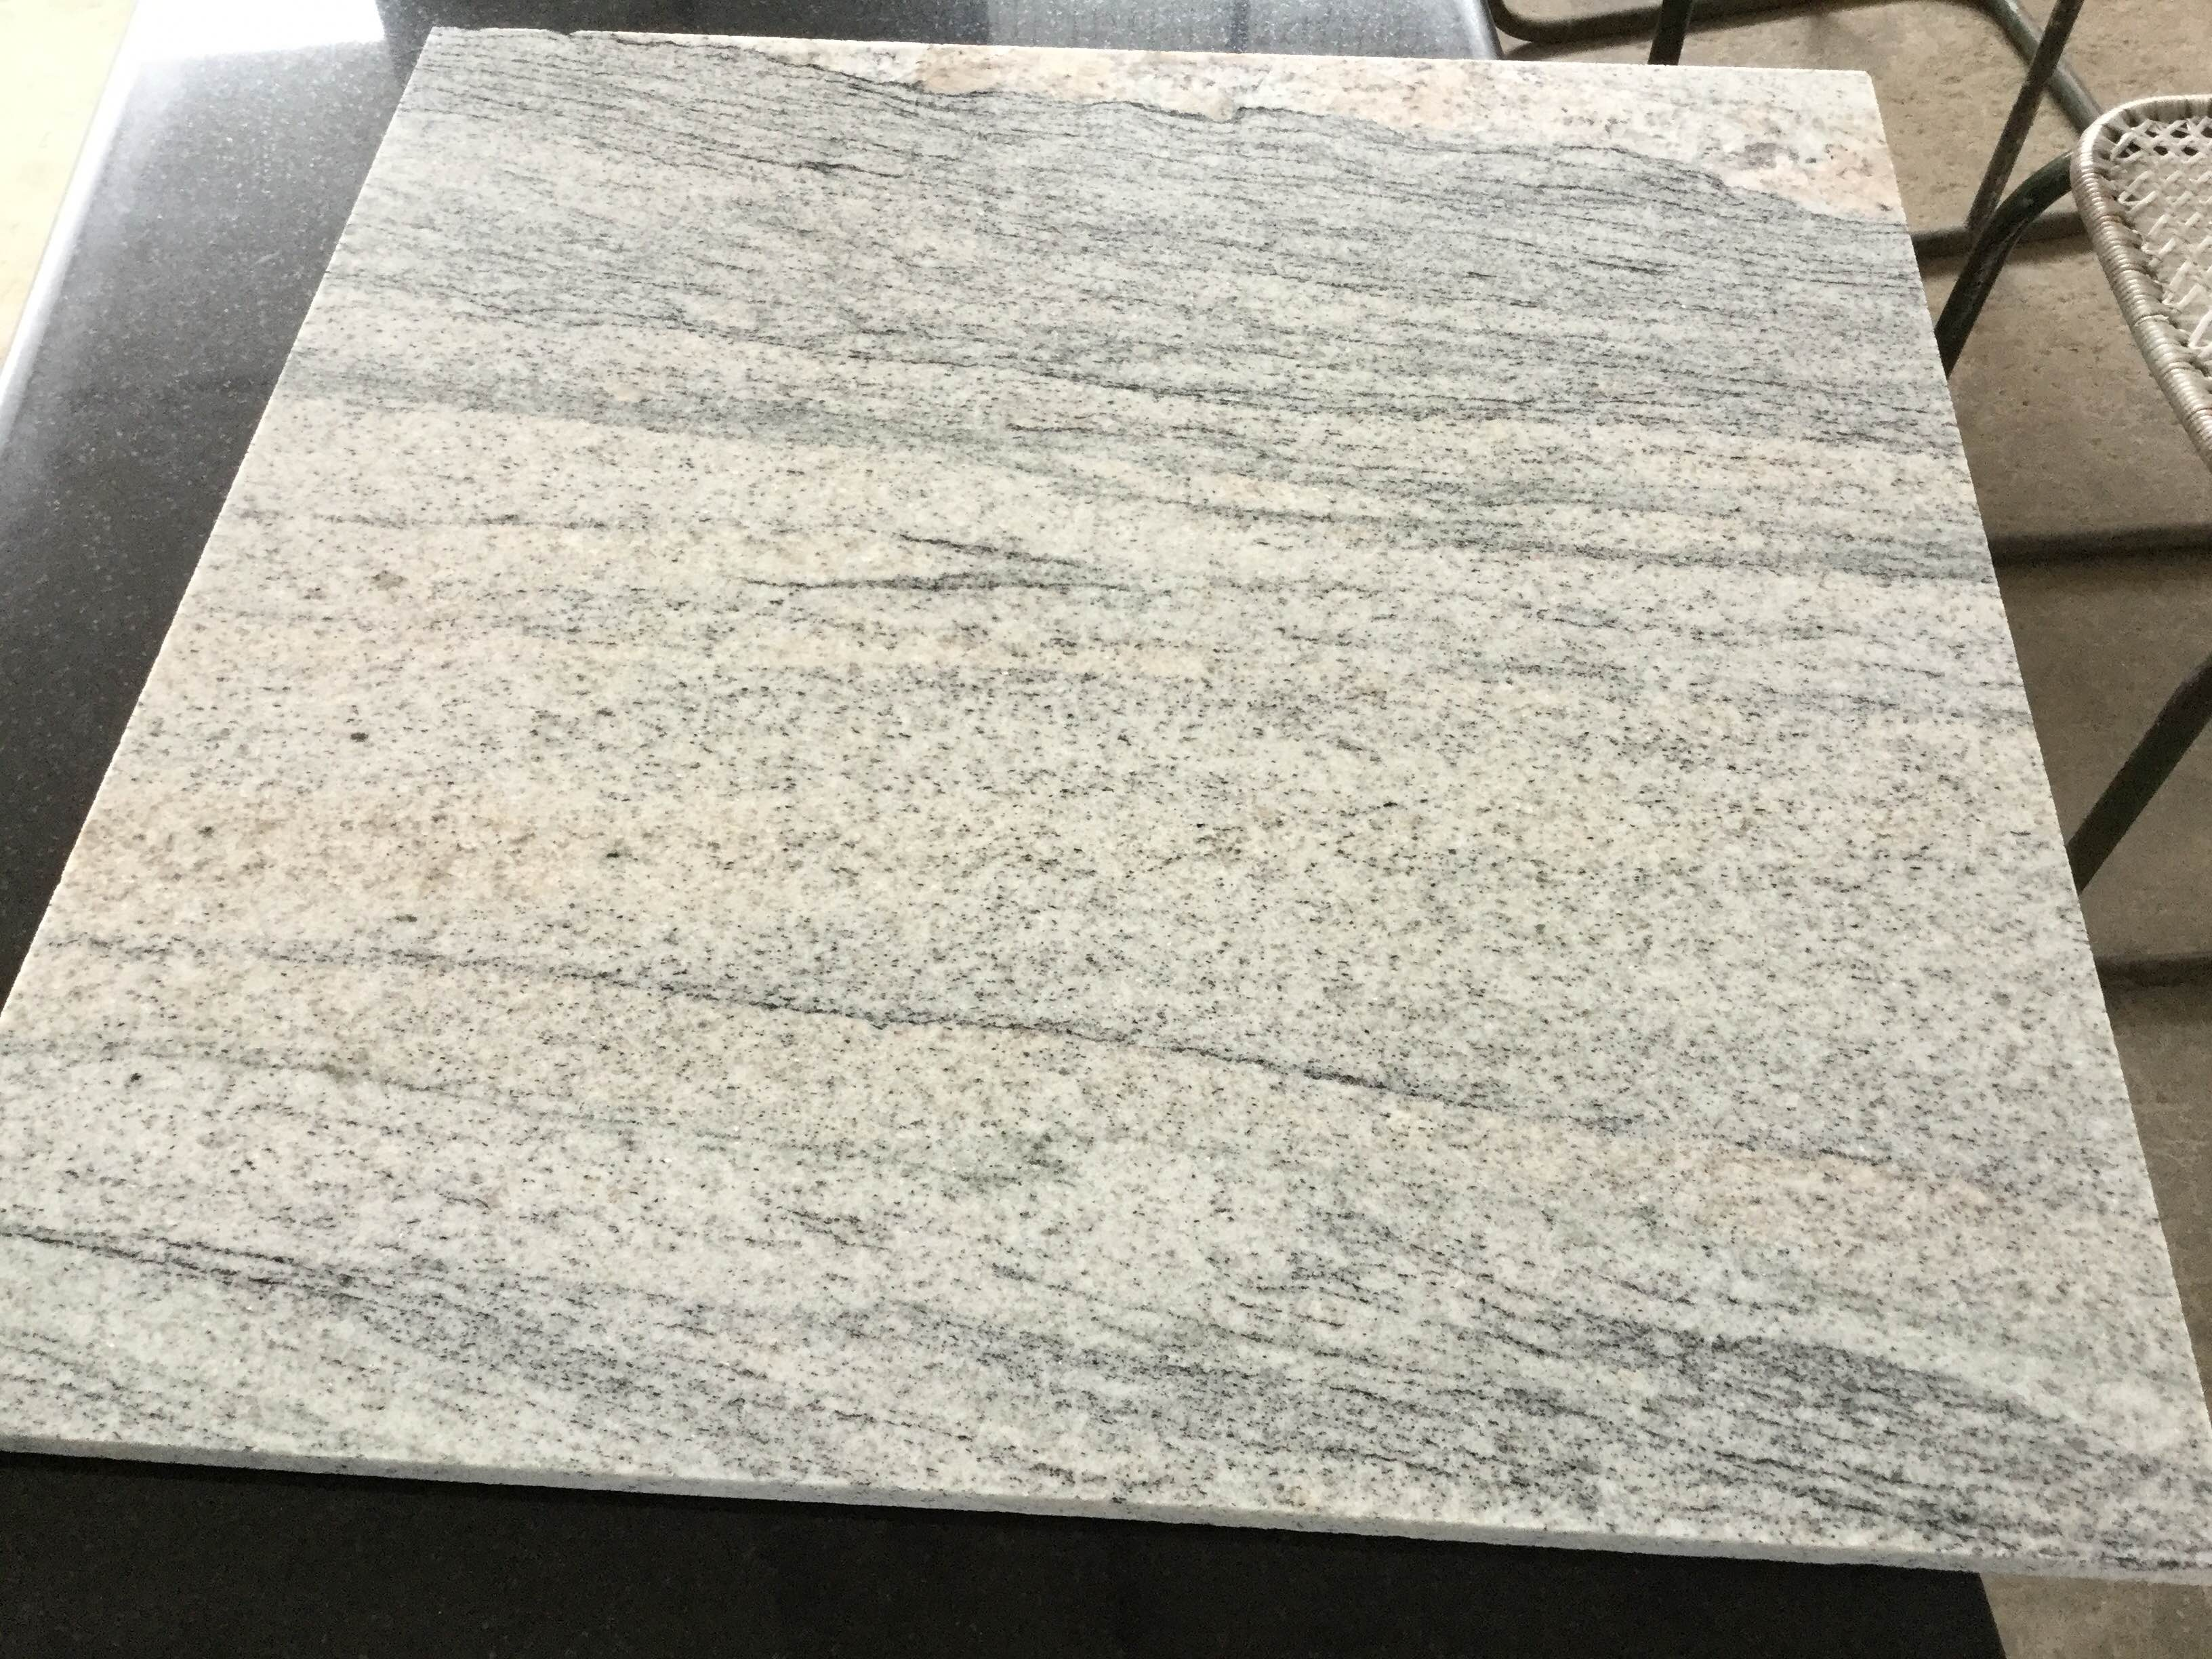 Imperial White Granite : Packing of imperial white granite slabs the materials